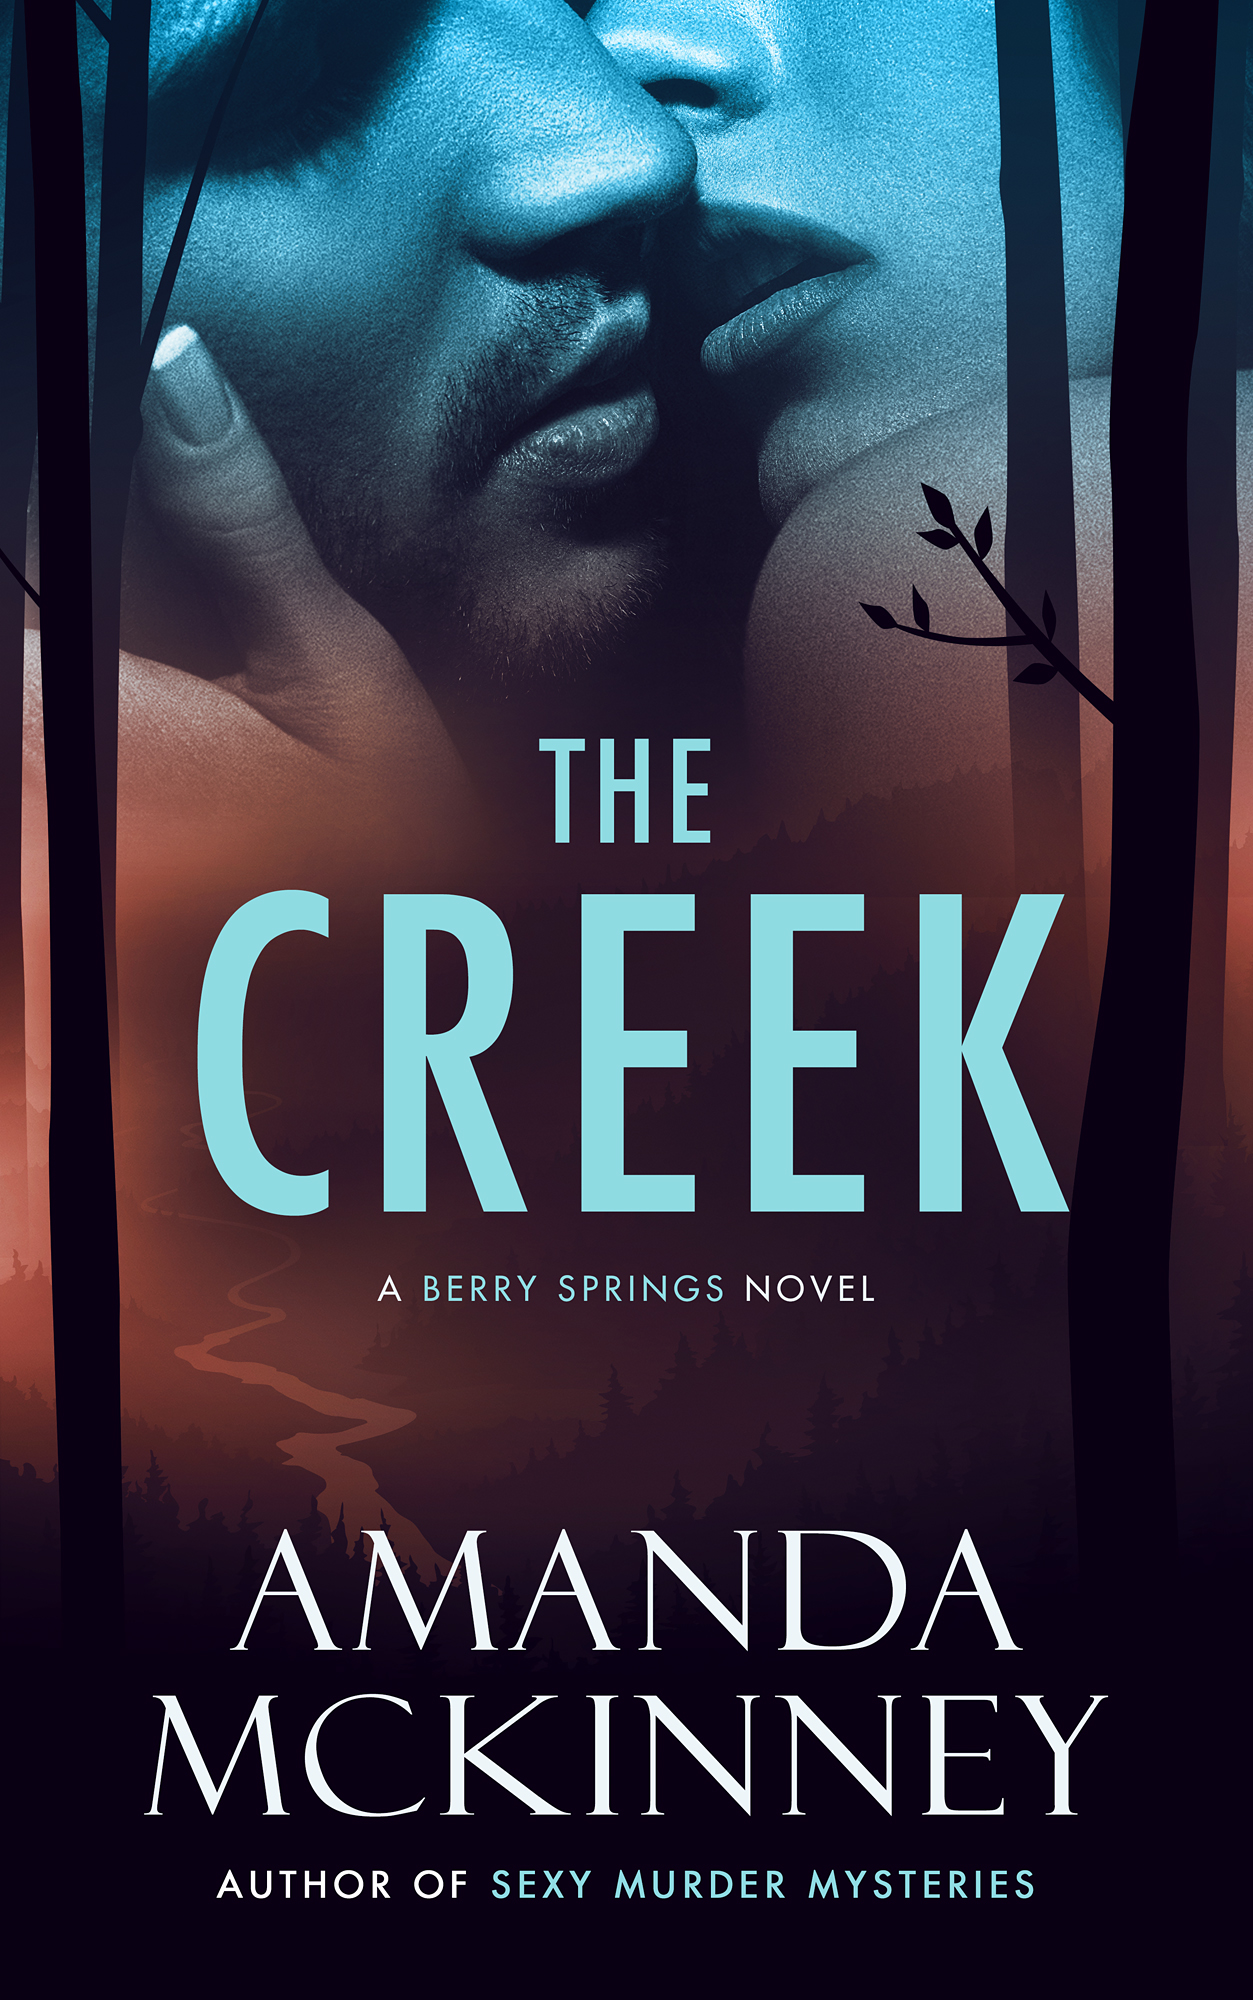 TheCreek_Ebook_Small.jpg